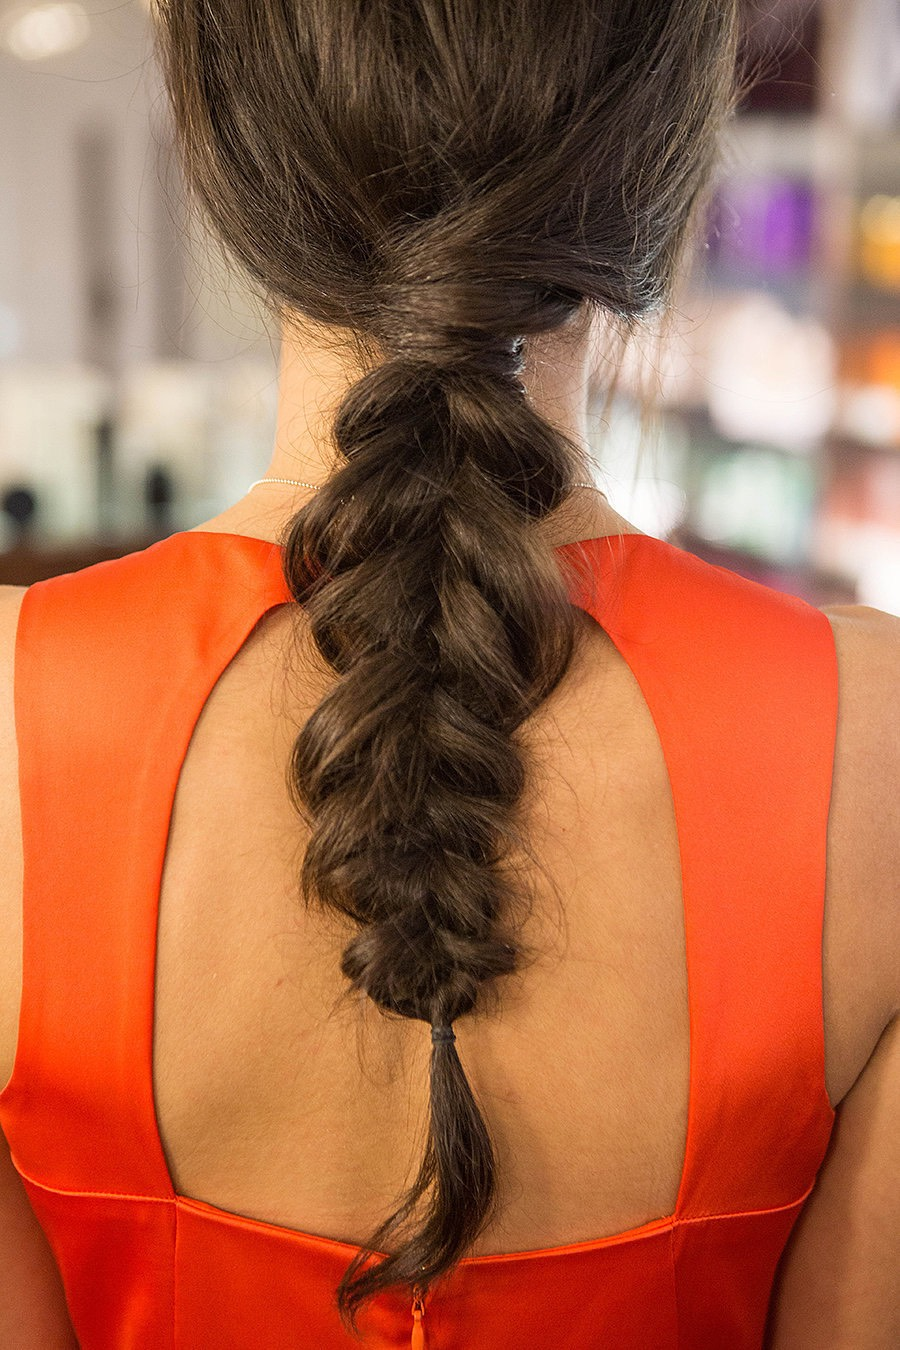 Inside-Out Braid The inside-out braid is a cross between a typical three-strand plait and a dutch braid. By folding hair outward, the braid is much more open and easy to stretch. This technique is easy to master, and it's the key to achieving all those messy braided styles you admire.